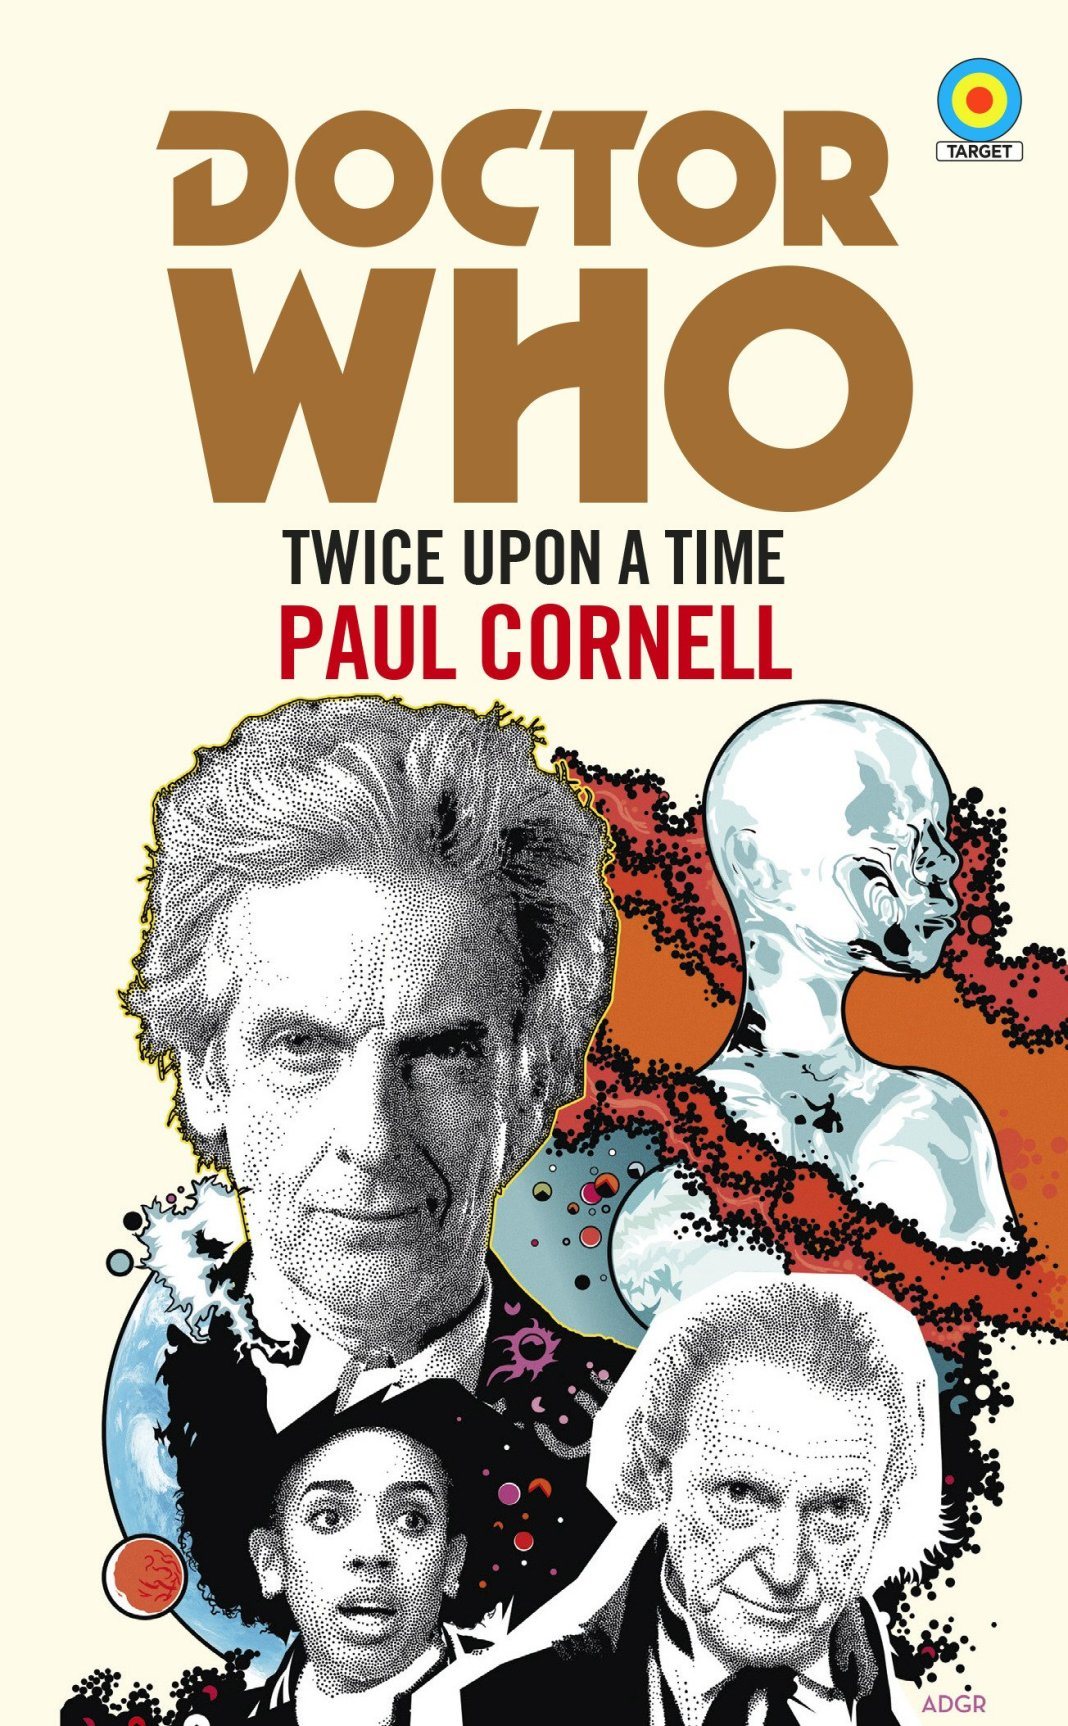 Doctor Who: Twice Upon a Time - Target - (c) BBC Books